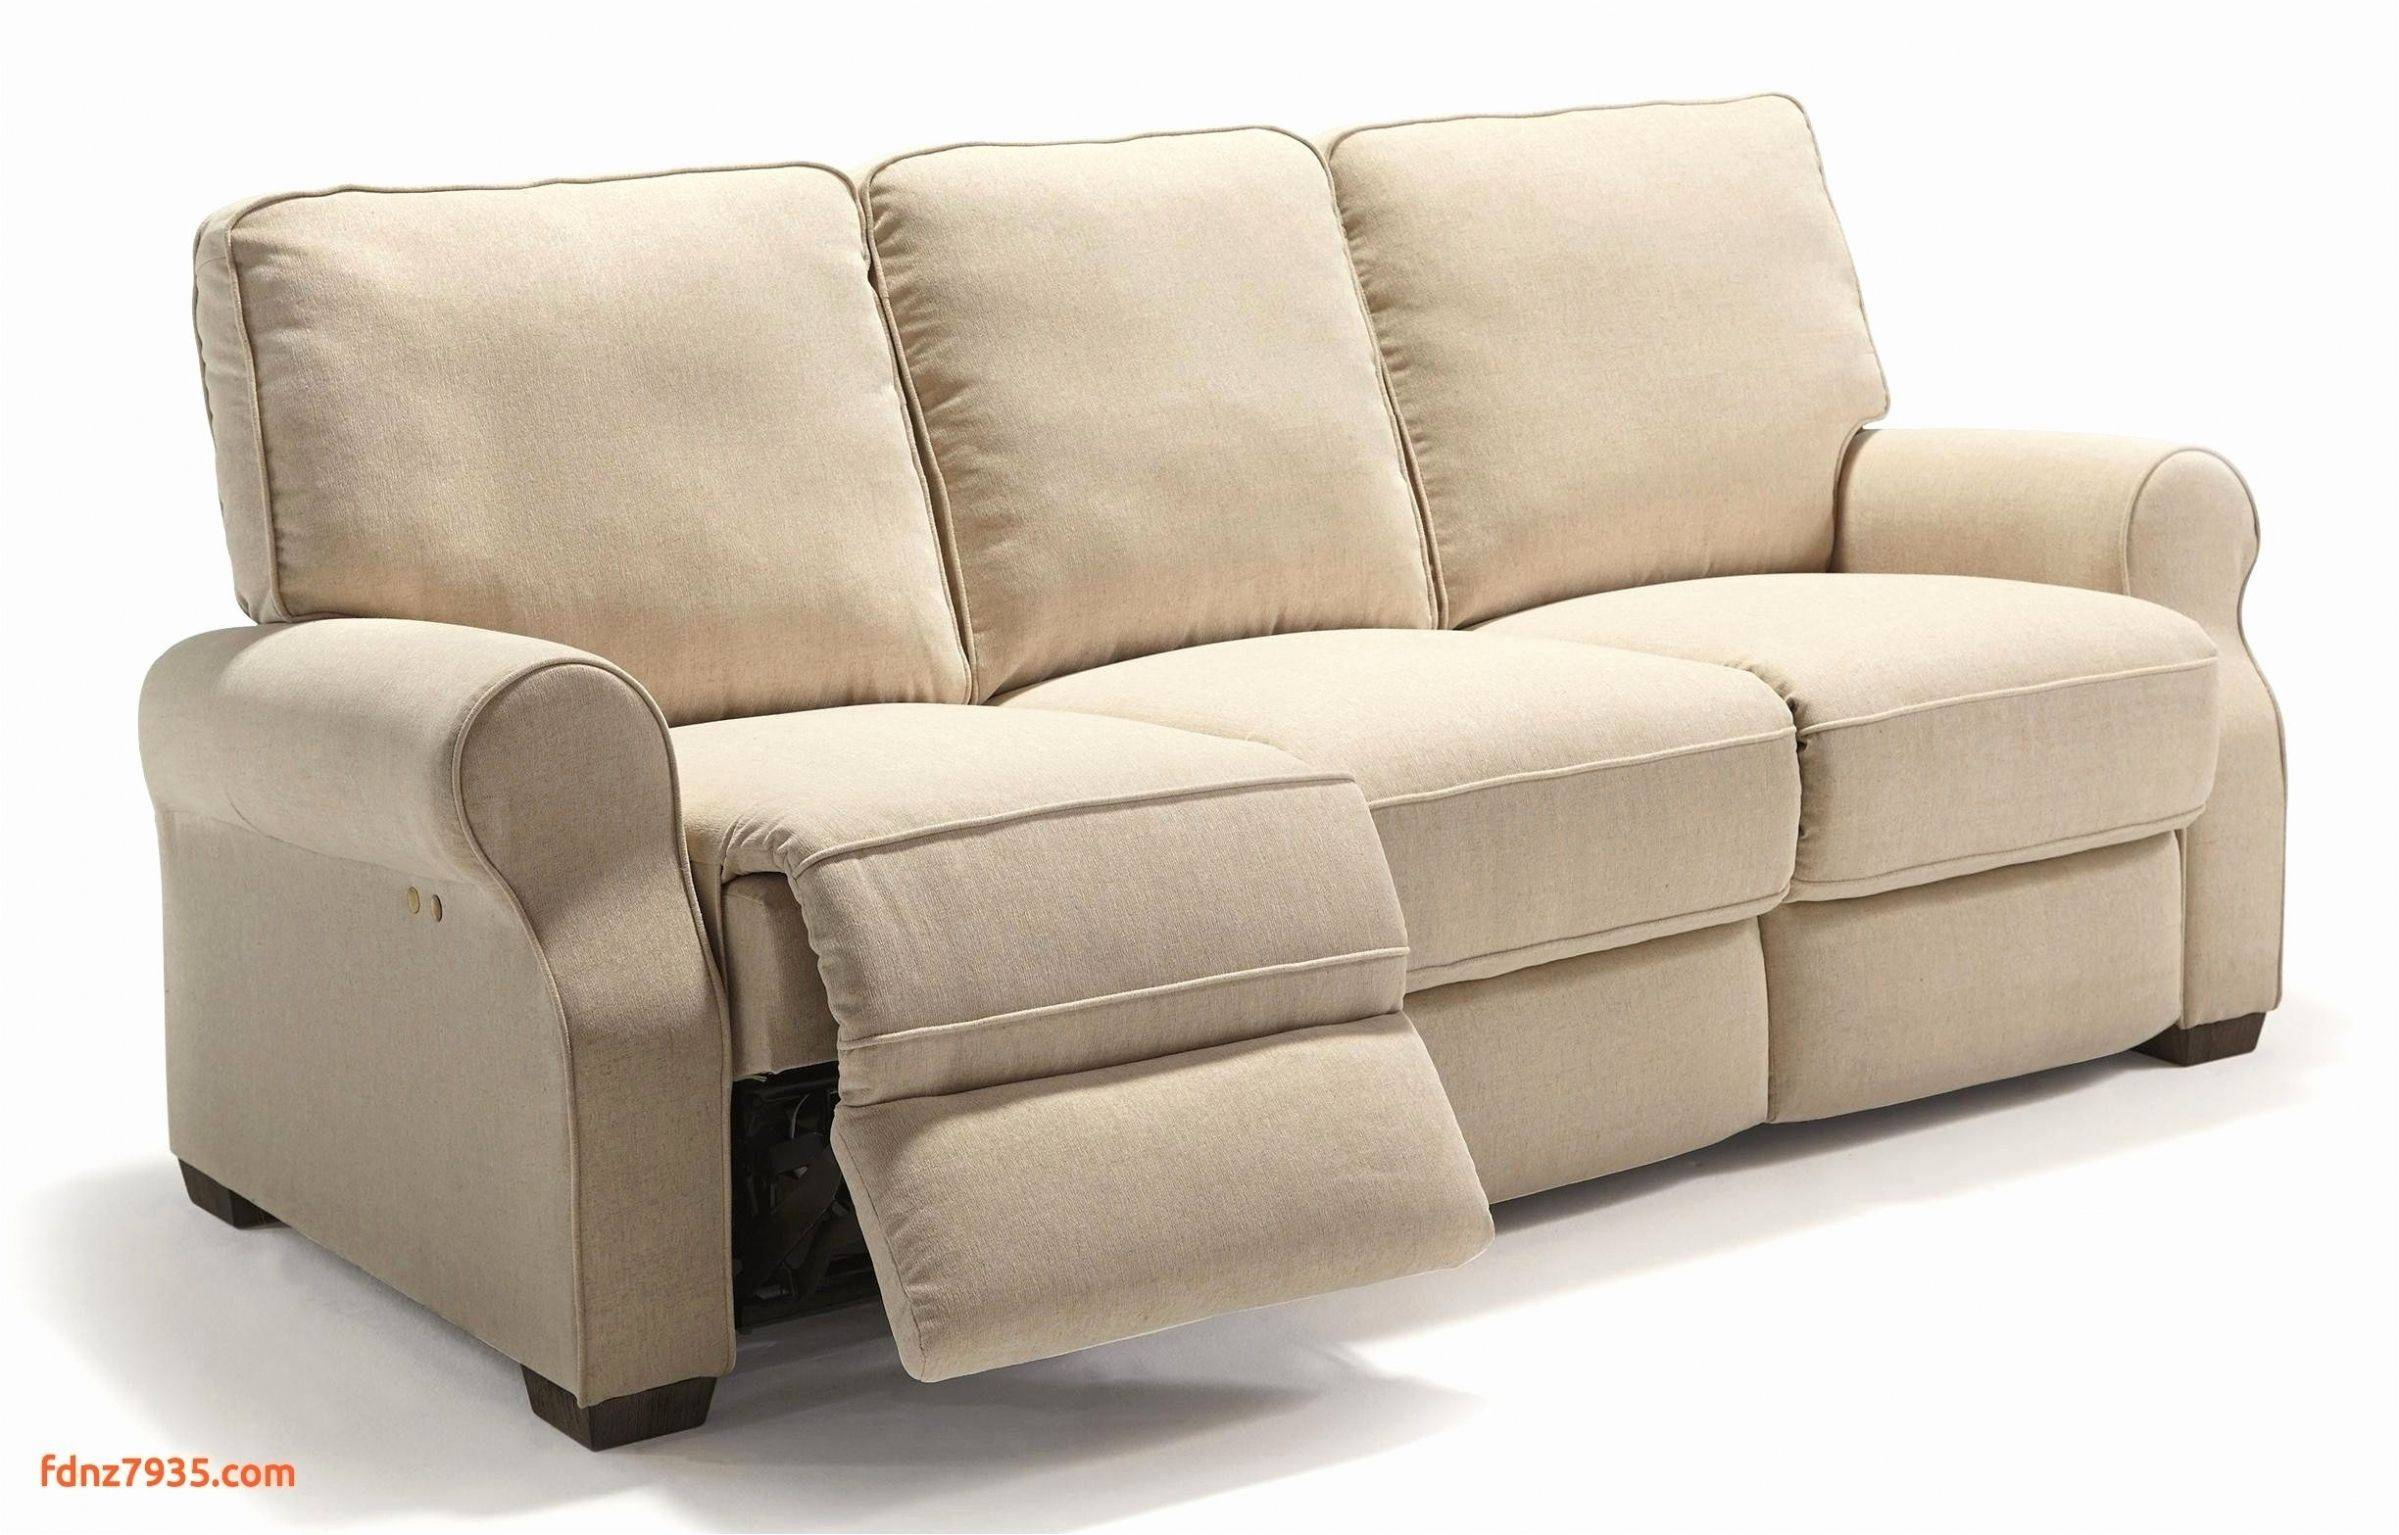 Sleeper sofa Best Of Pin On the Best sofa Models